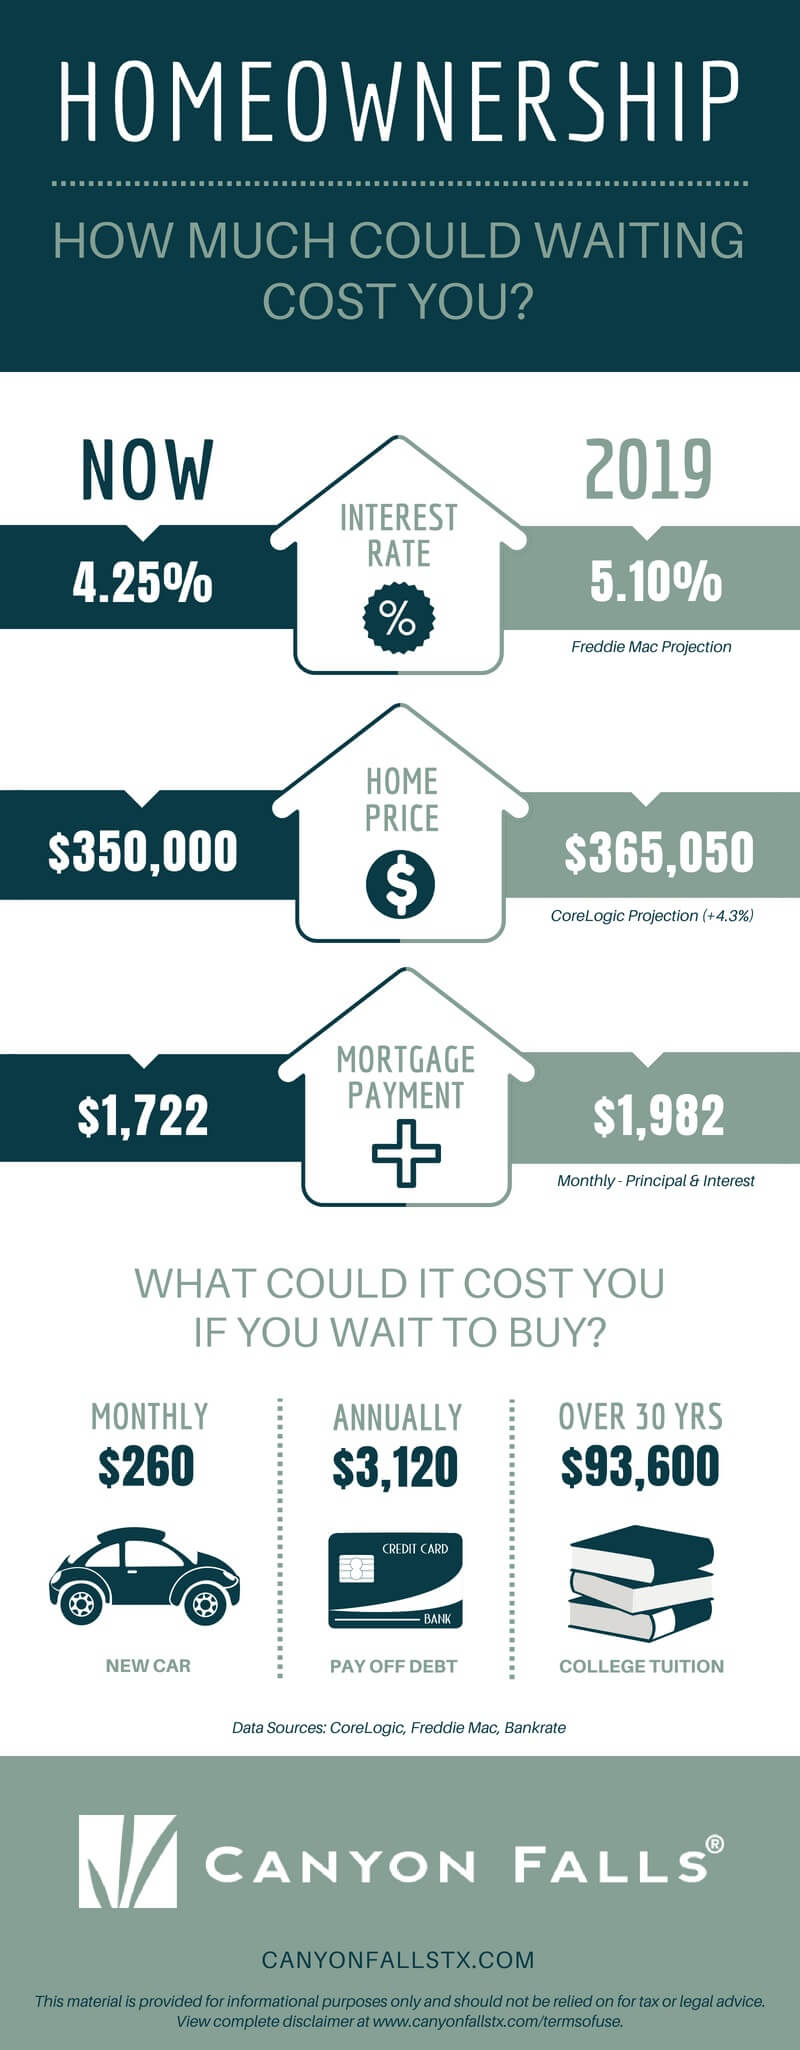 How much does it cost to wait to buy a new home infographic